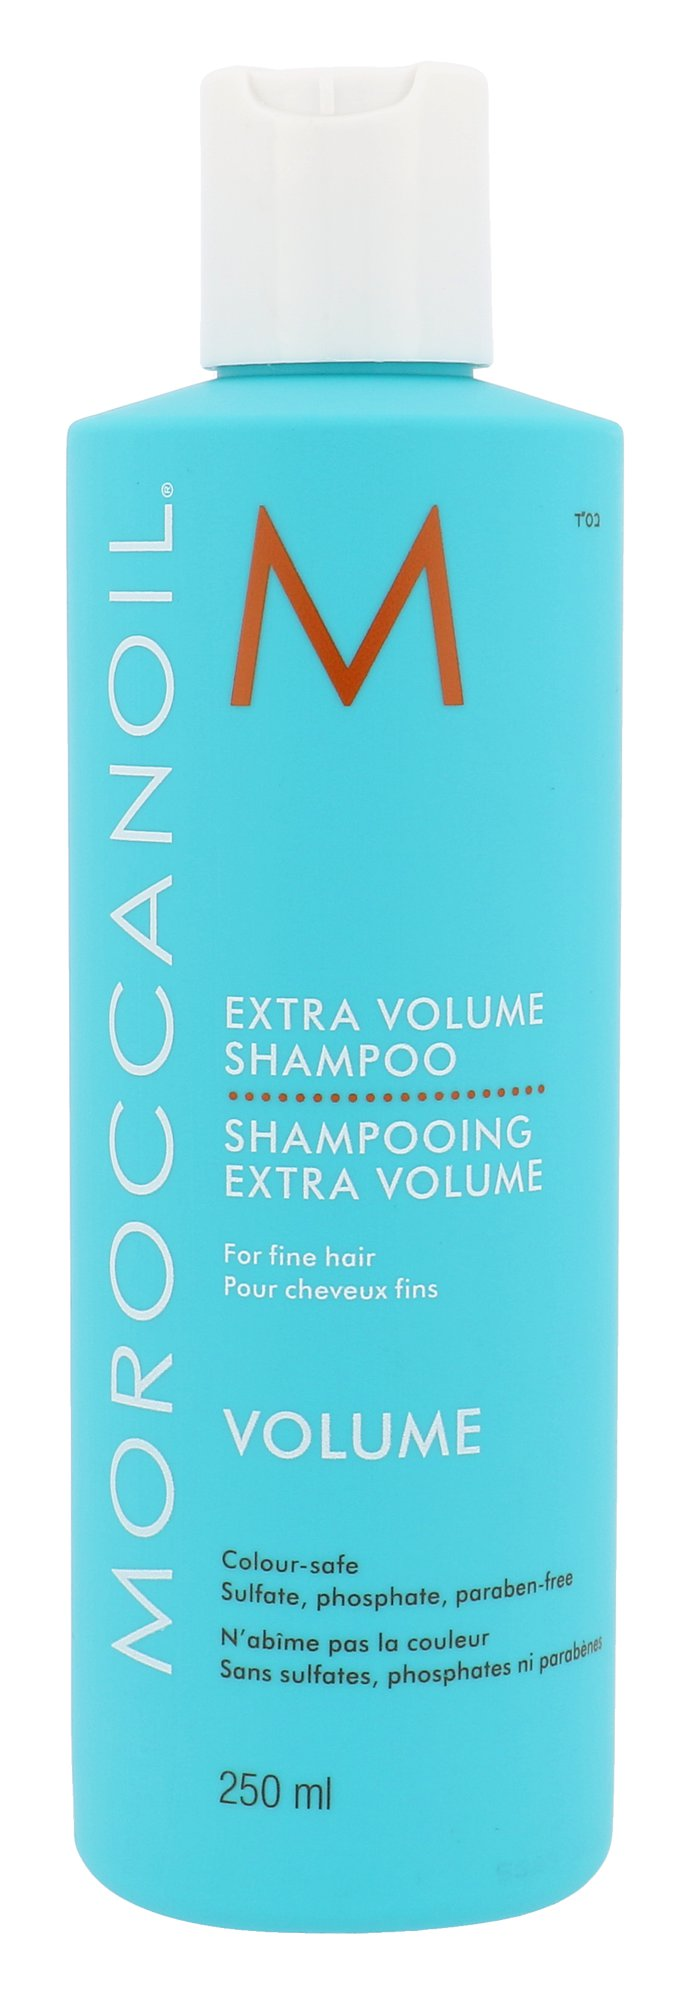 Moroccanoil Volume, Šampón 250ml